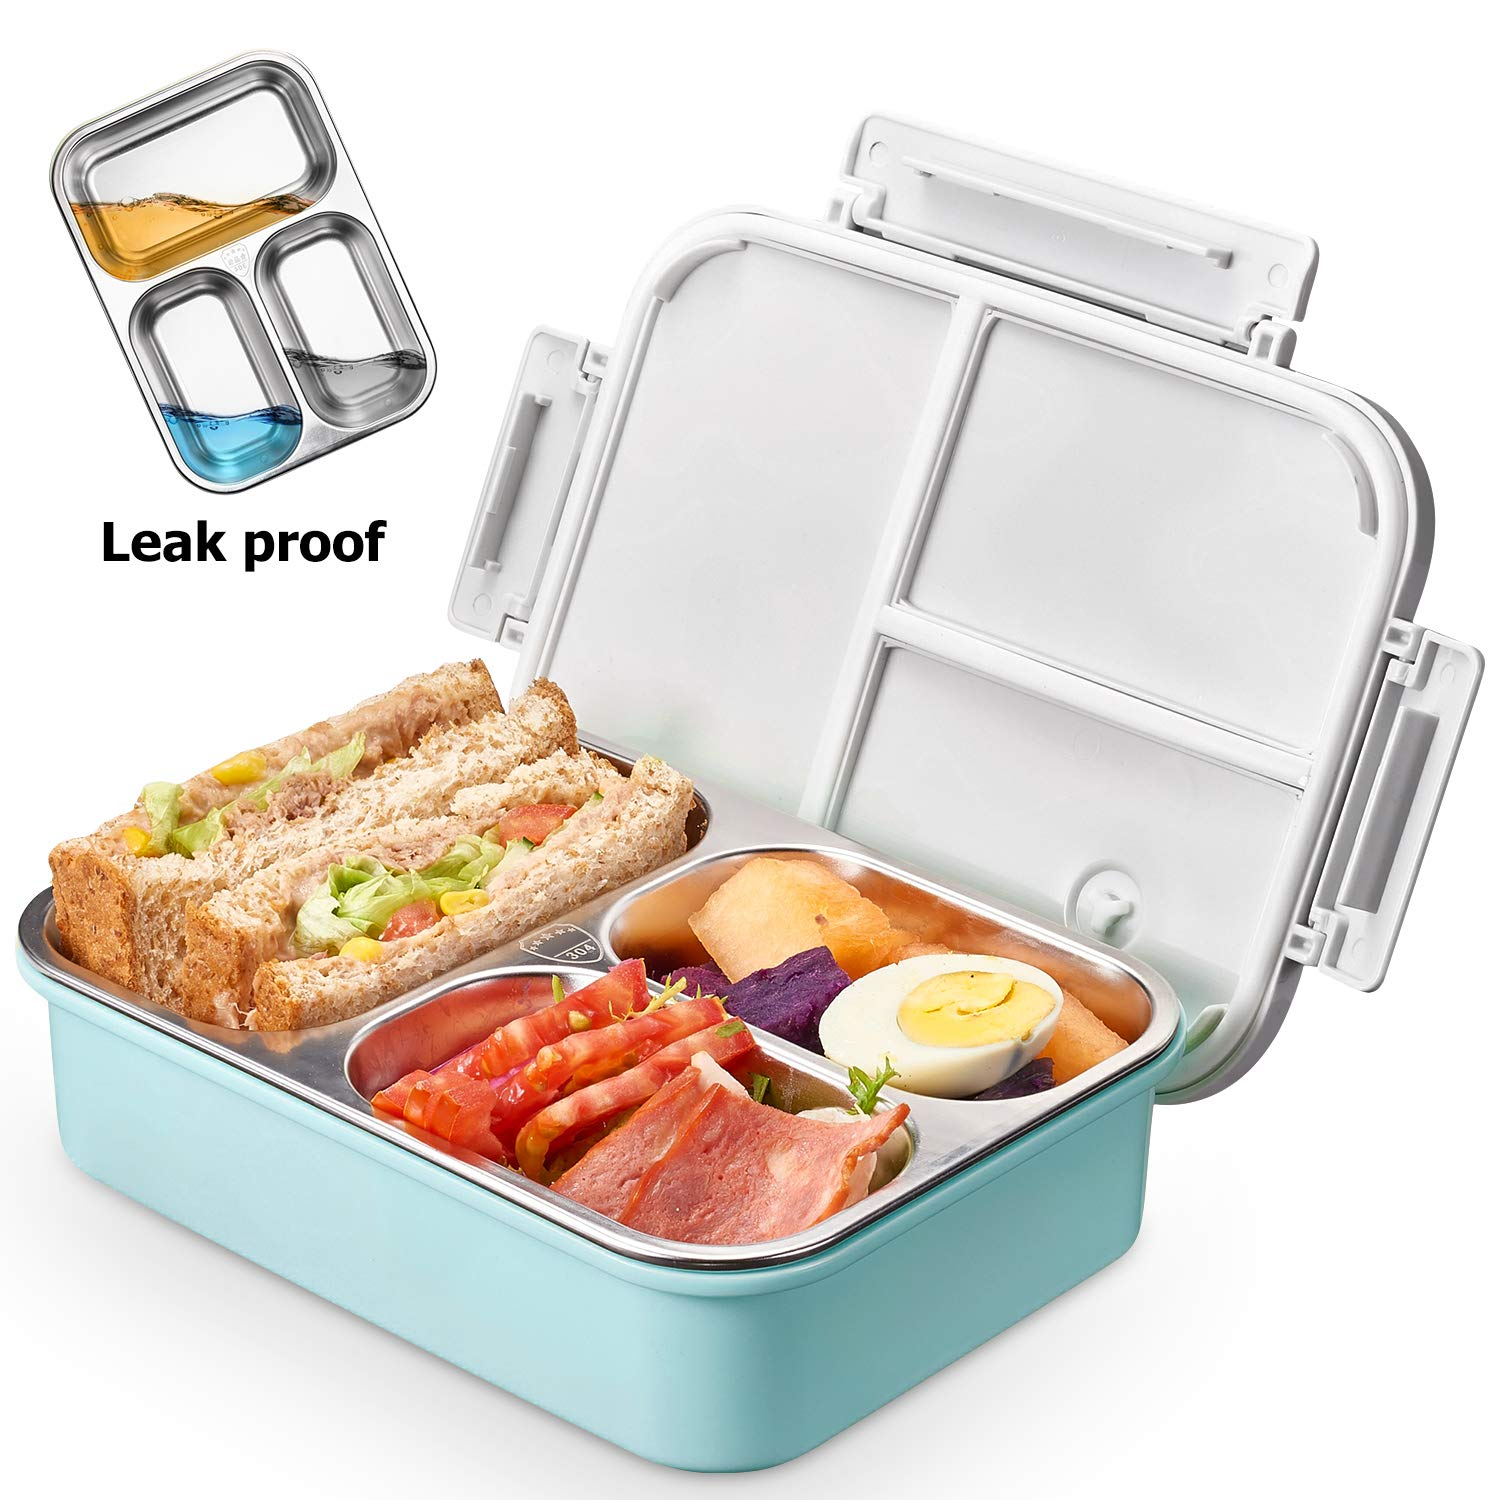 Kids Stainless Steel Lunch box - 2019 Upgraded Leak Proof 3-Compartment bento-Style Food containers-Ideal Portion Sizes for Ages 4 to 15 - BPA-Free and Food-Safe Materials by Derminpro